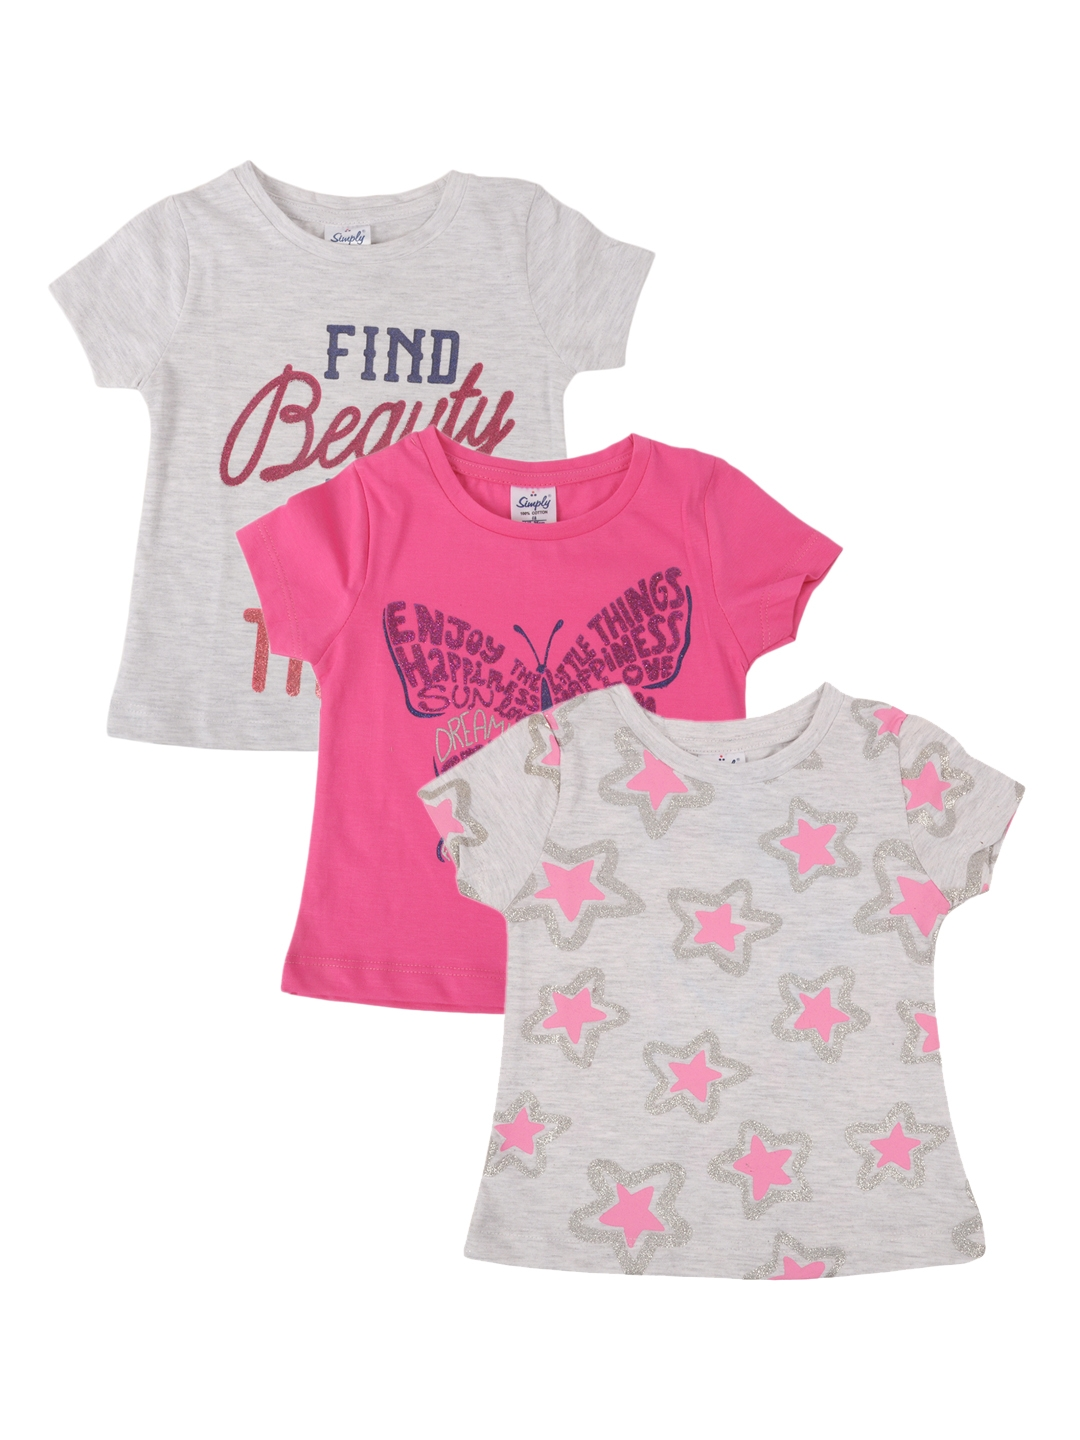 Simply Girls Pack of 3 Printed Round Neck T shirts